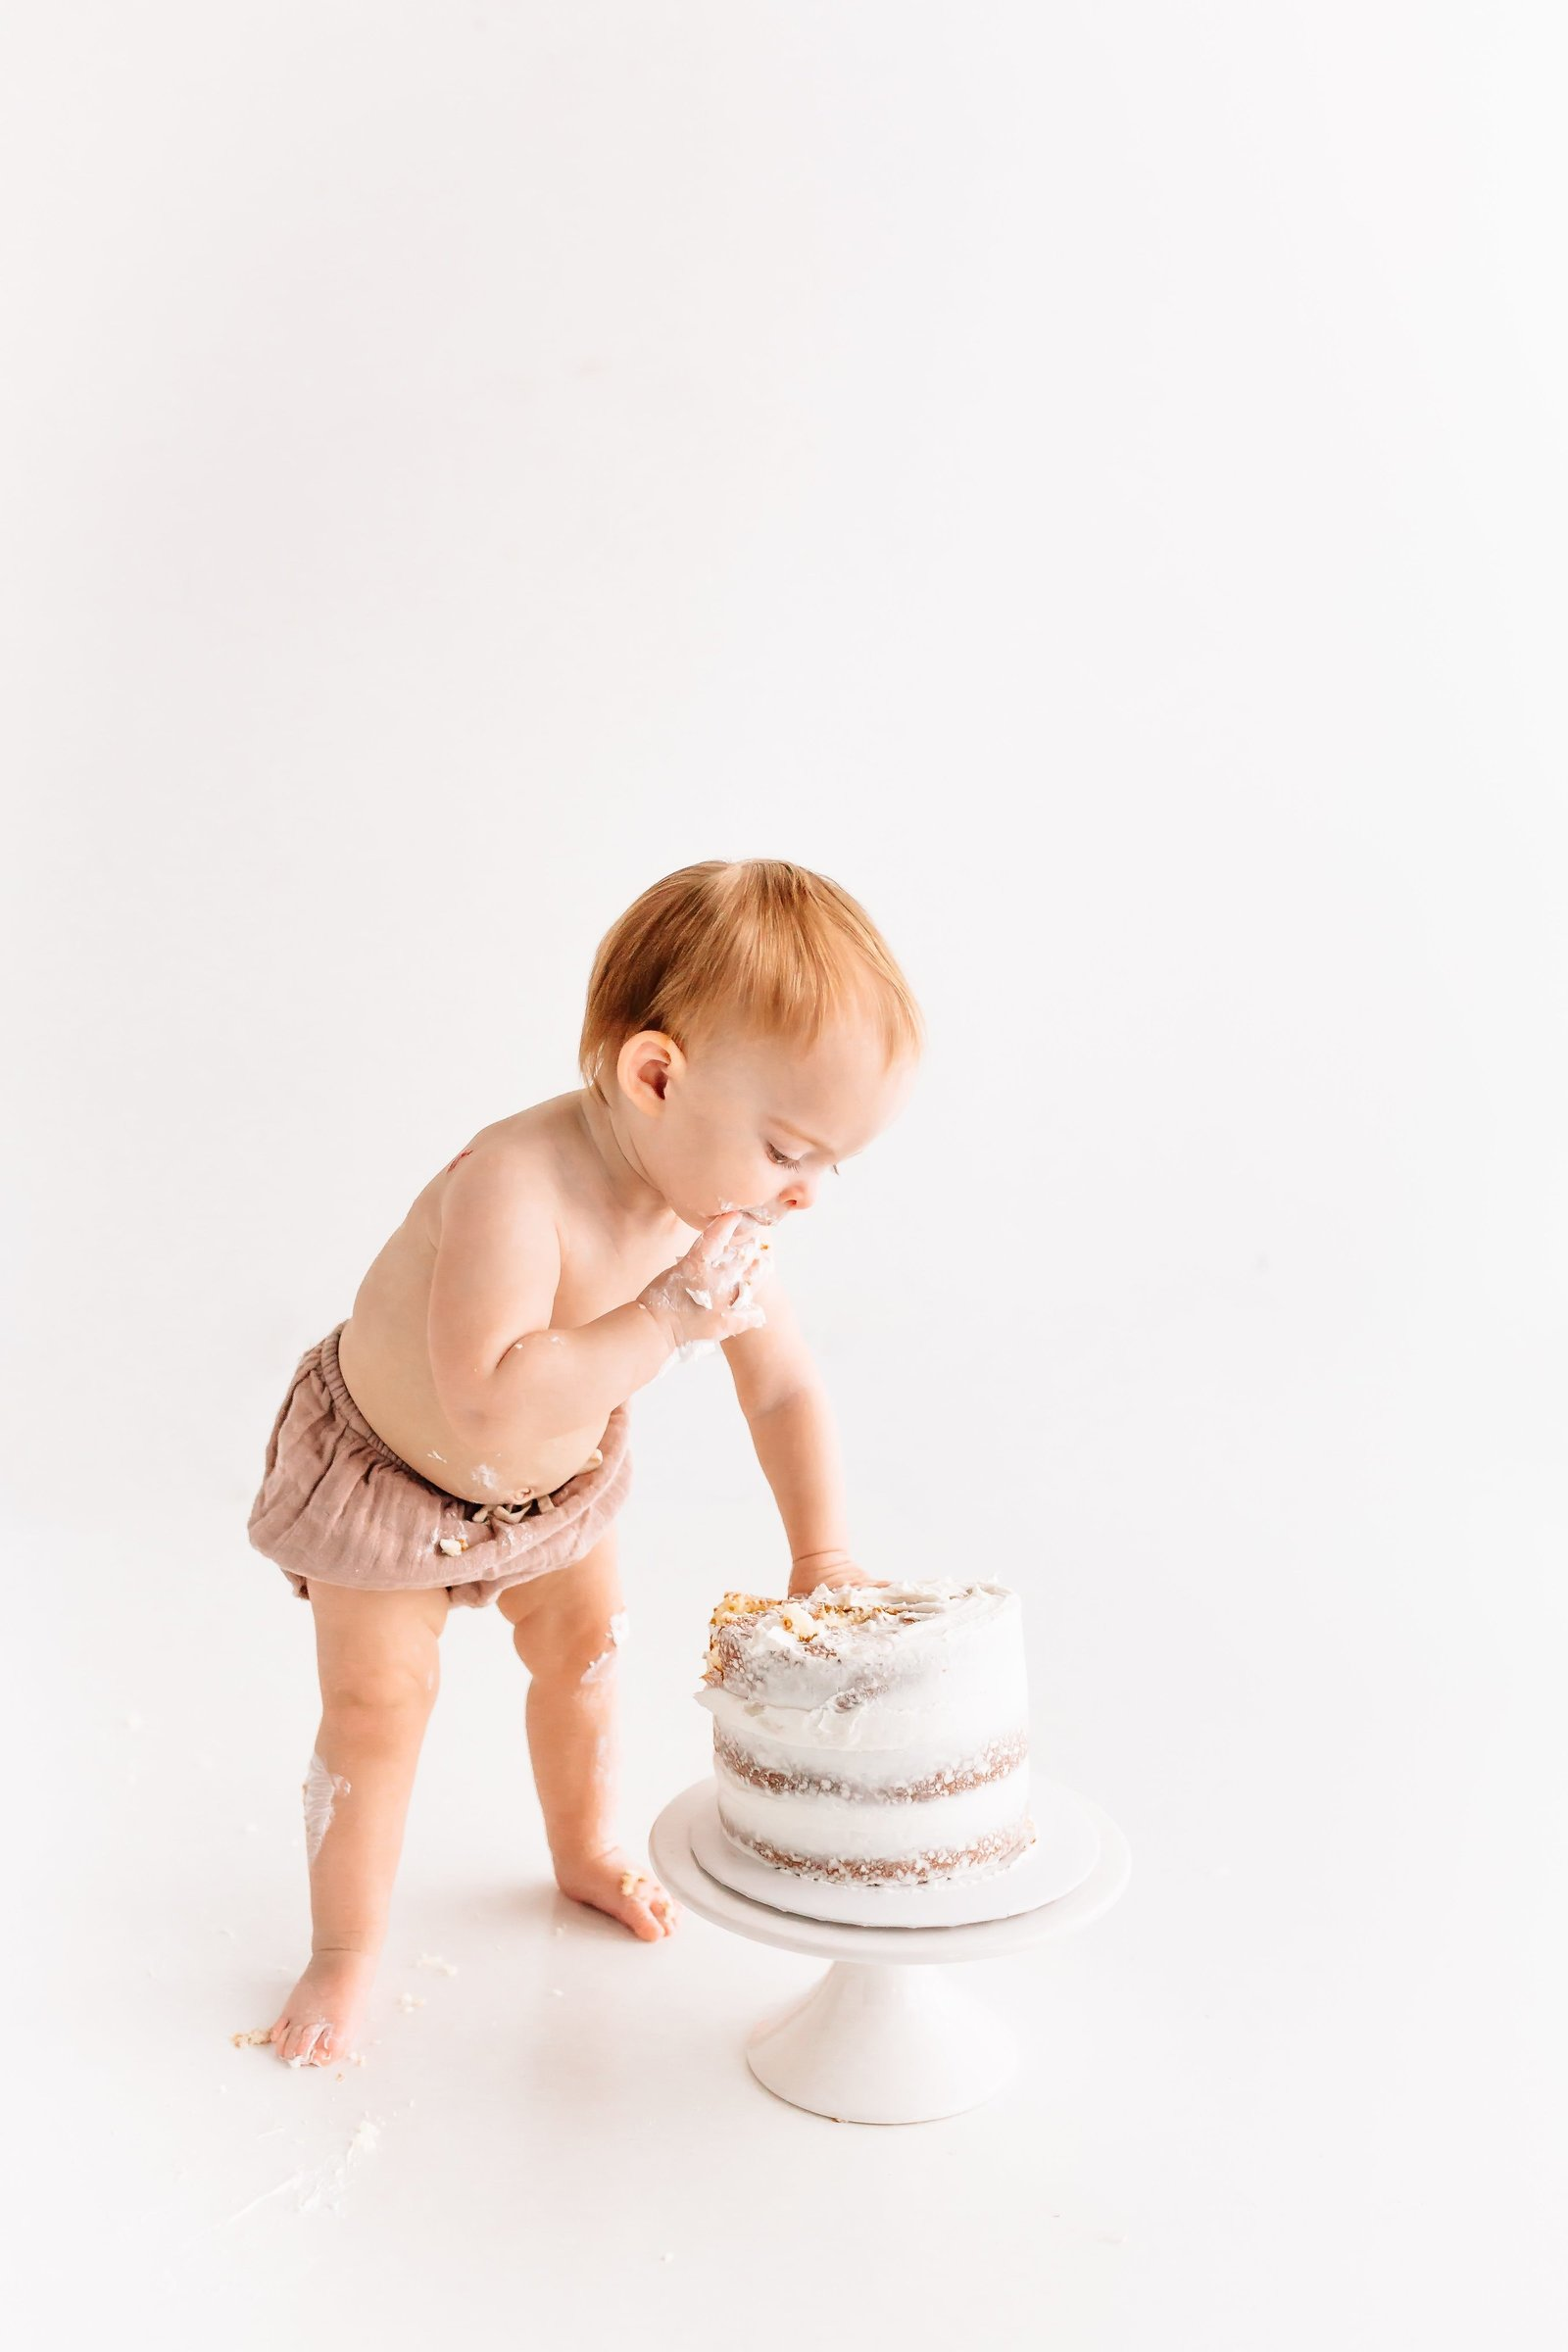 St_Louis_Baby_Photographer_Kelly_Laramore_Photography_107